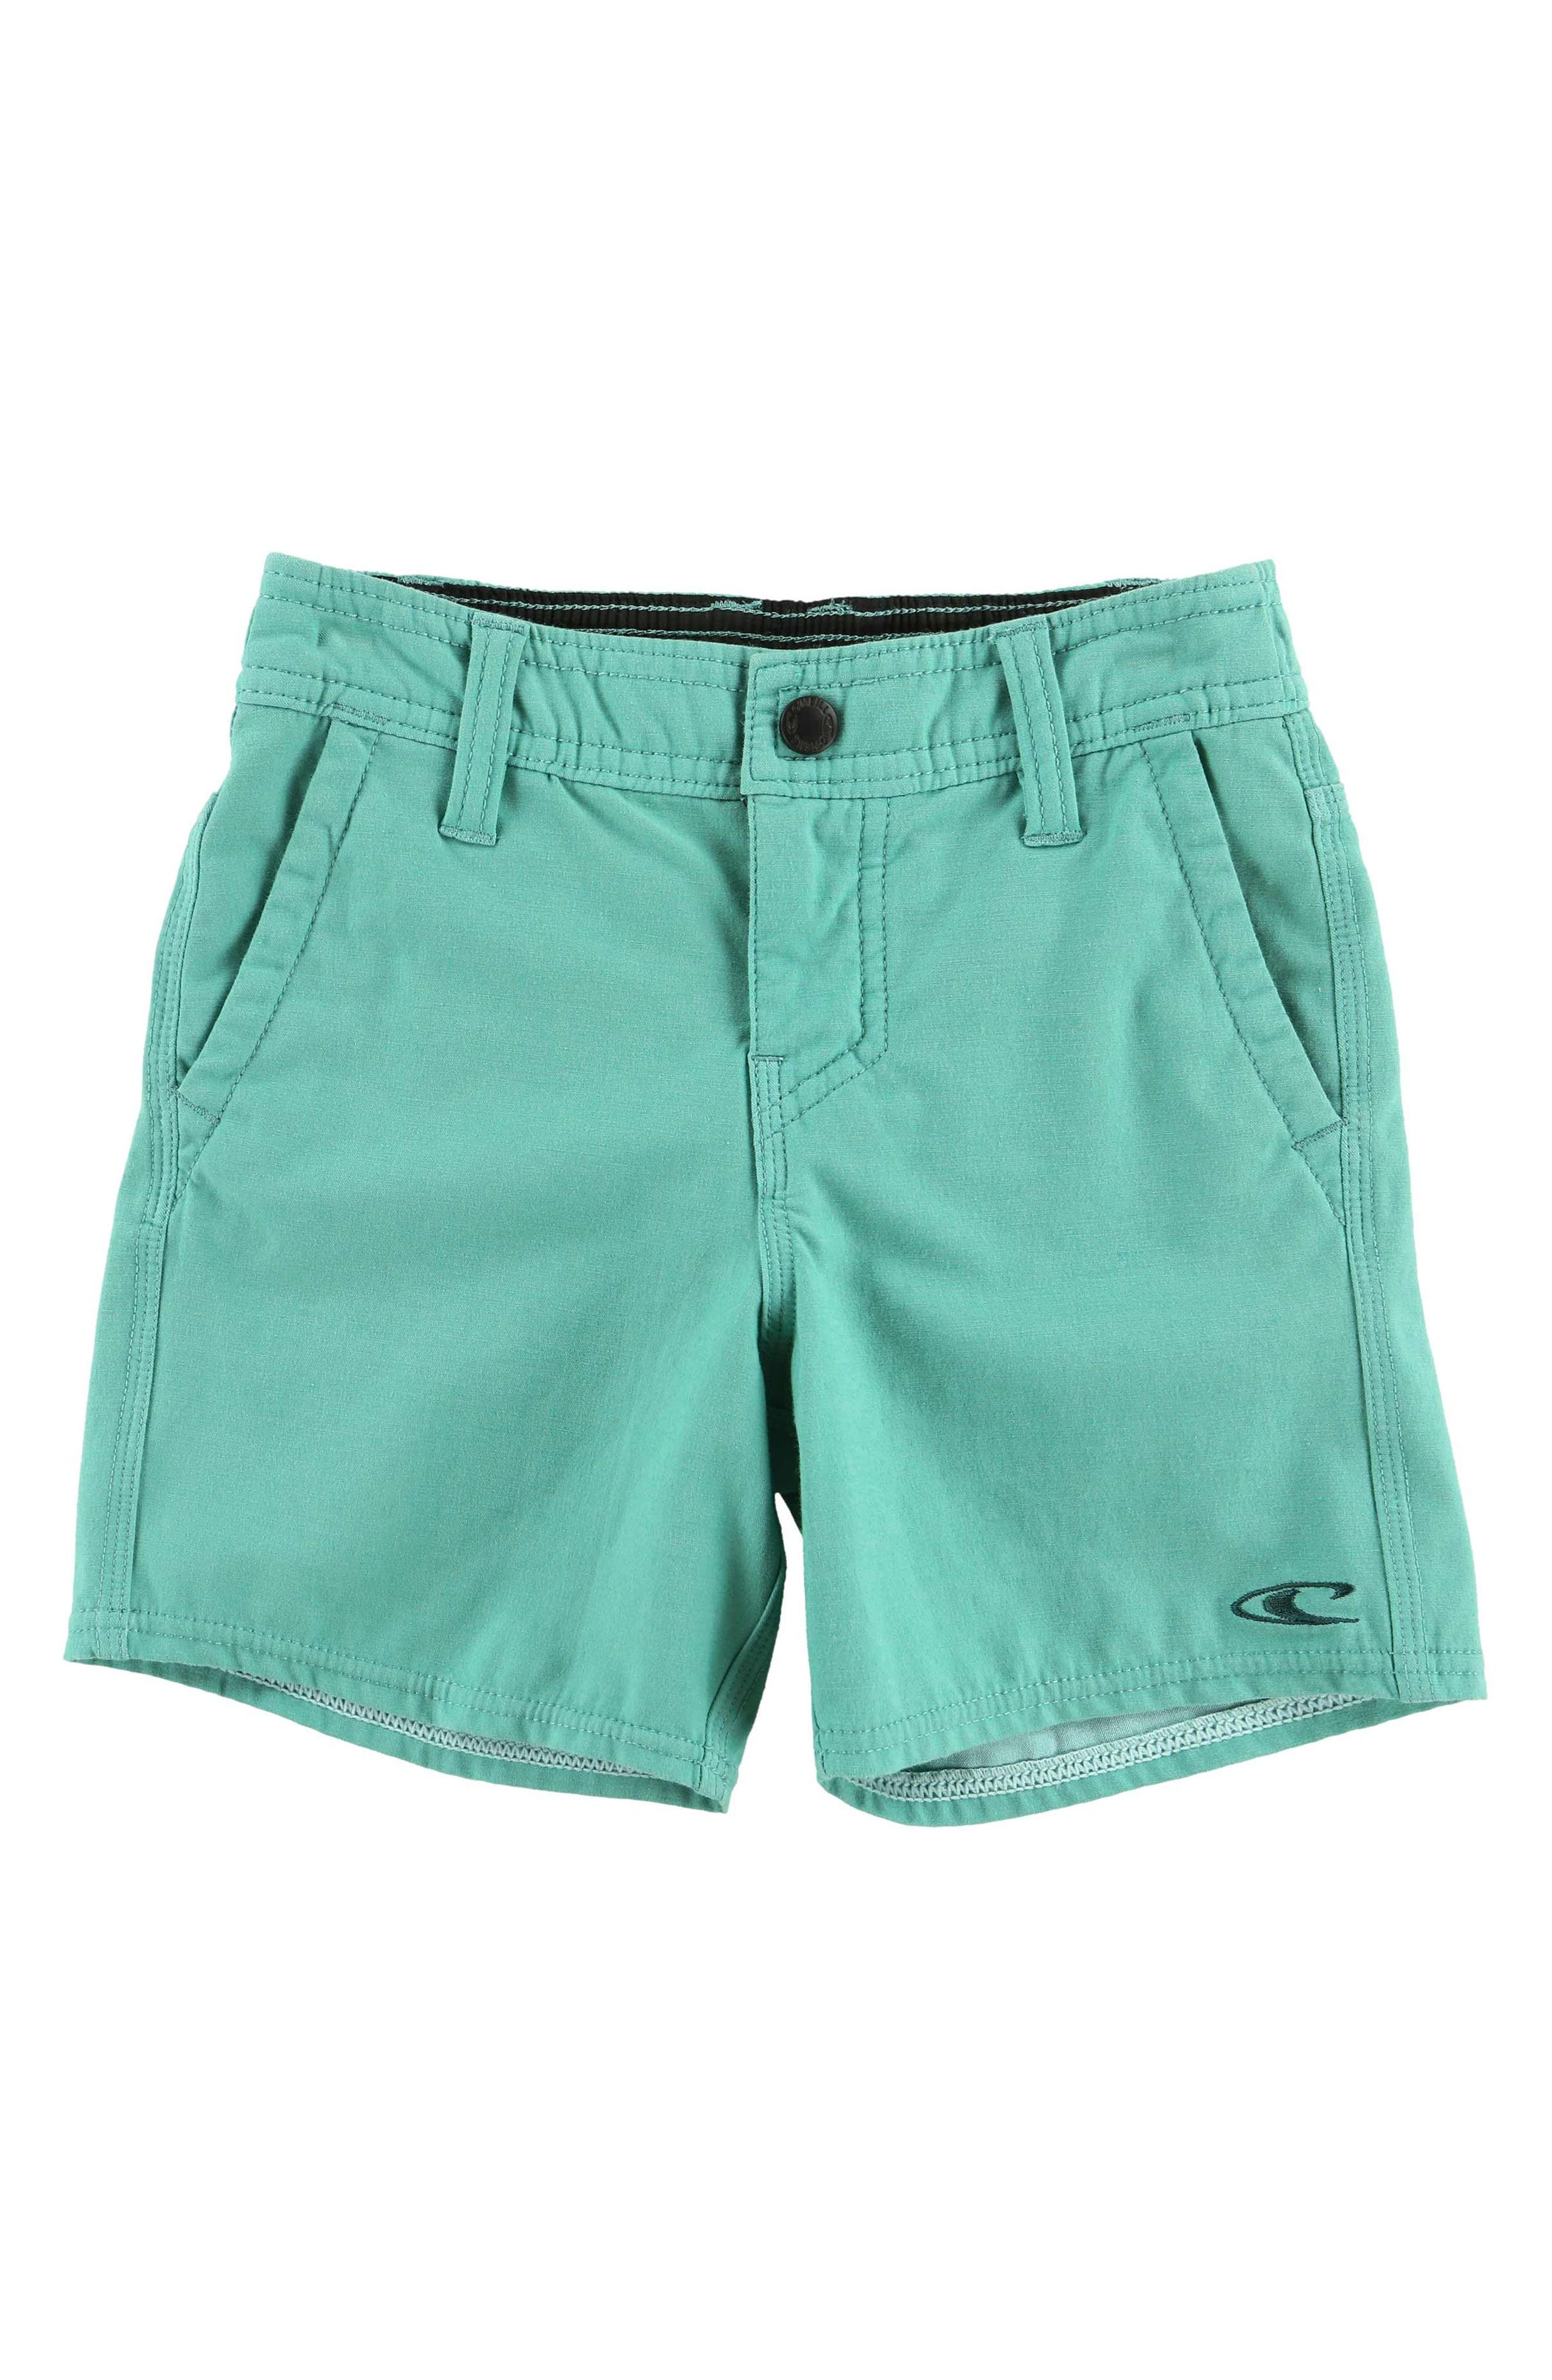 Locked Hybrid Board Shorts,                         Main,                         color, Jade